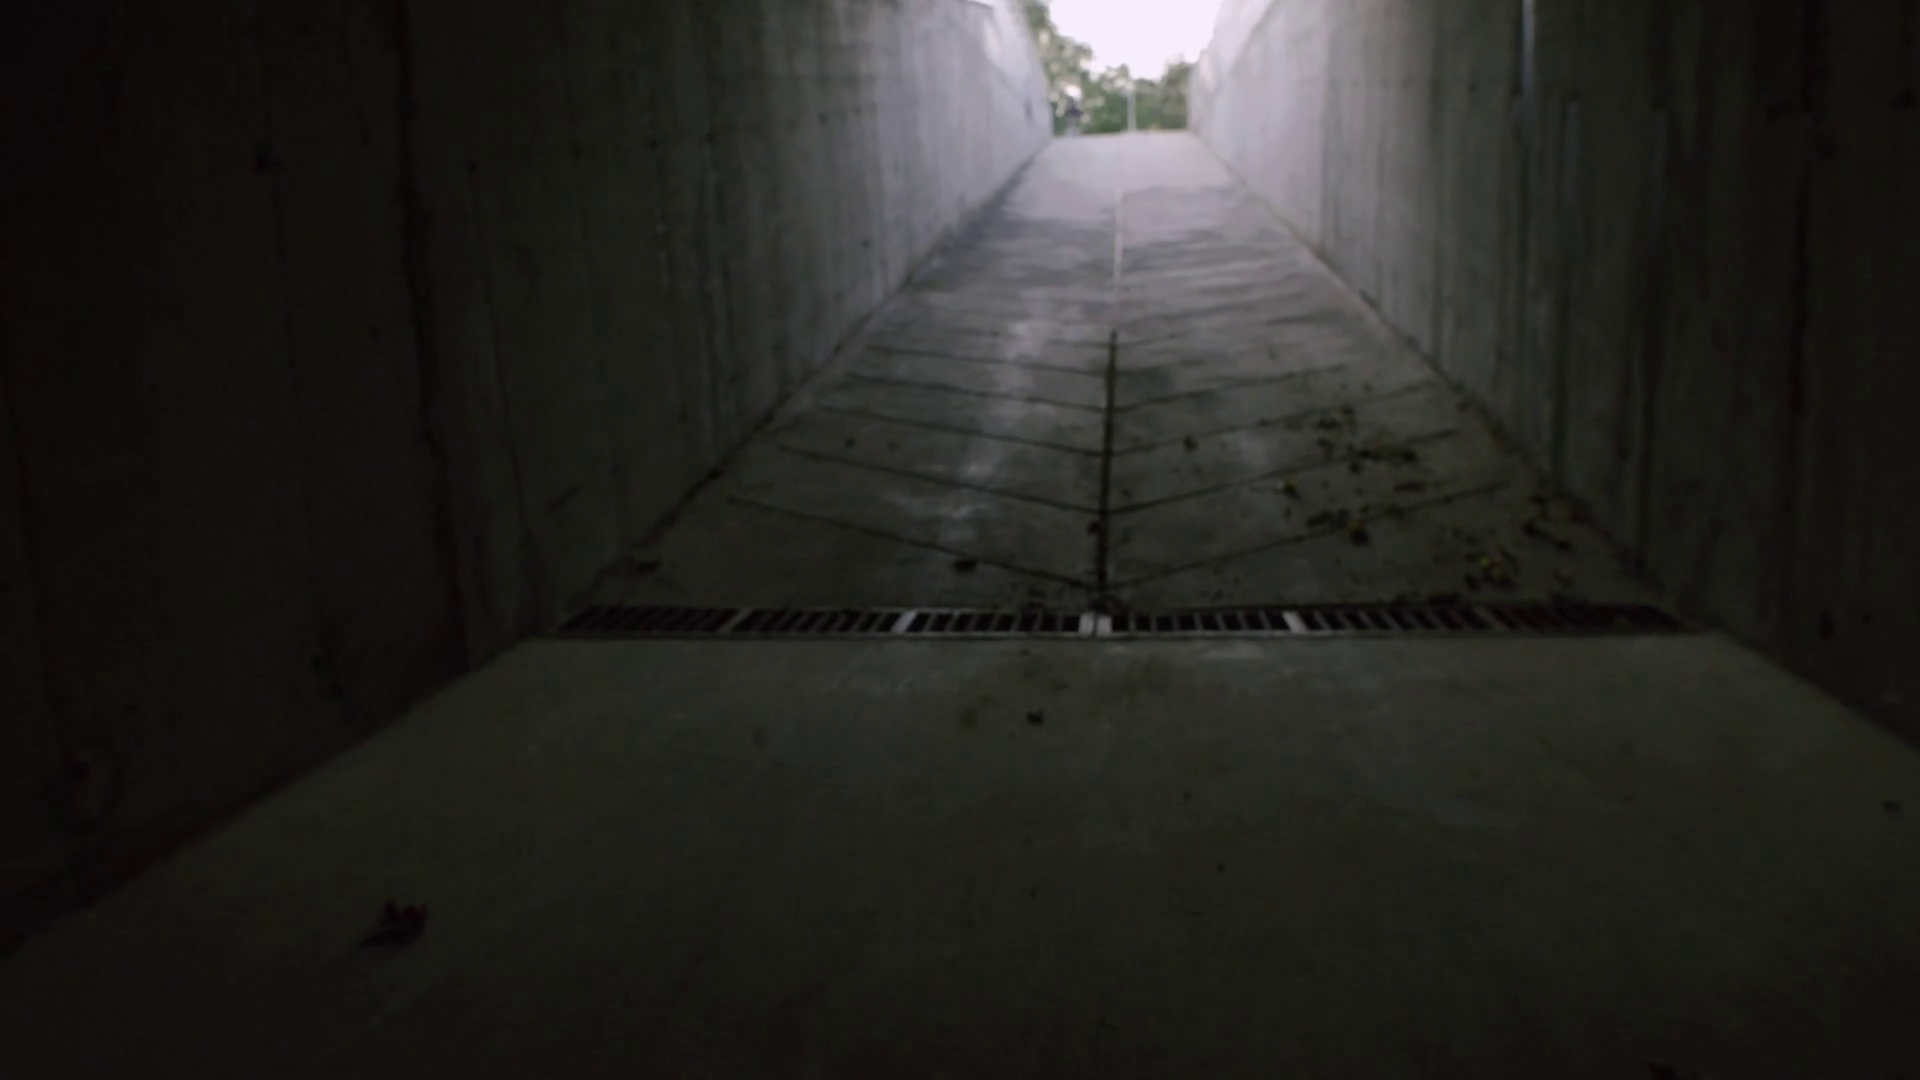 A young girl runs through a dark concrete tunnel to the glowing end ...